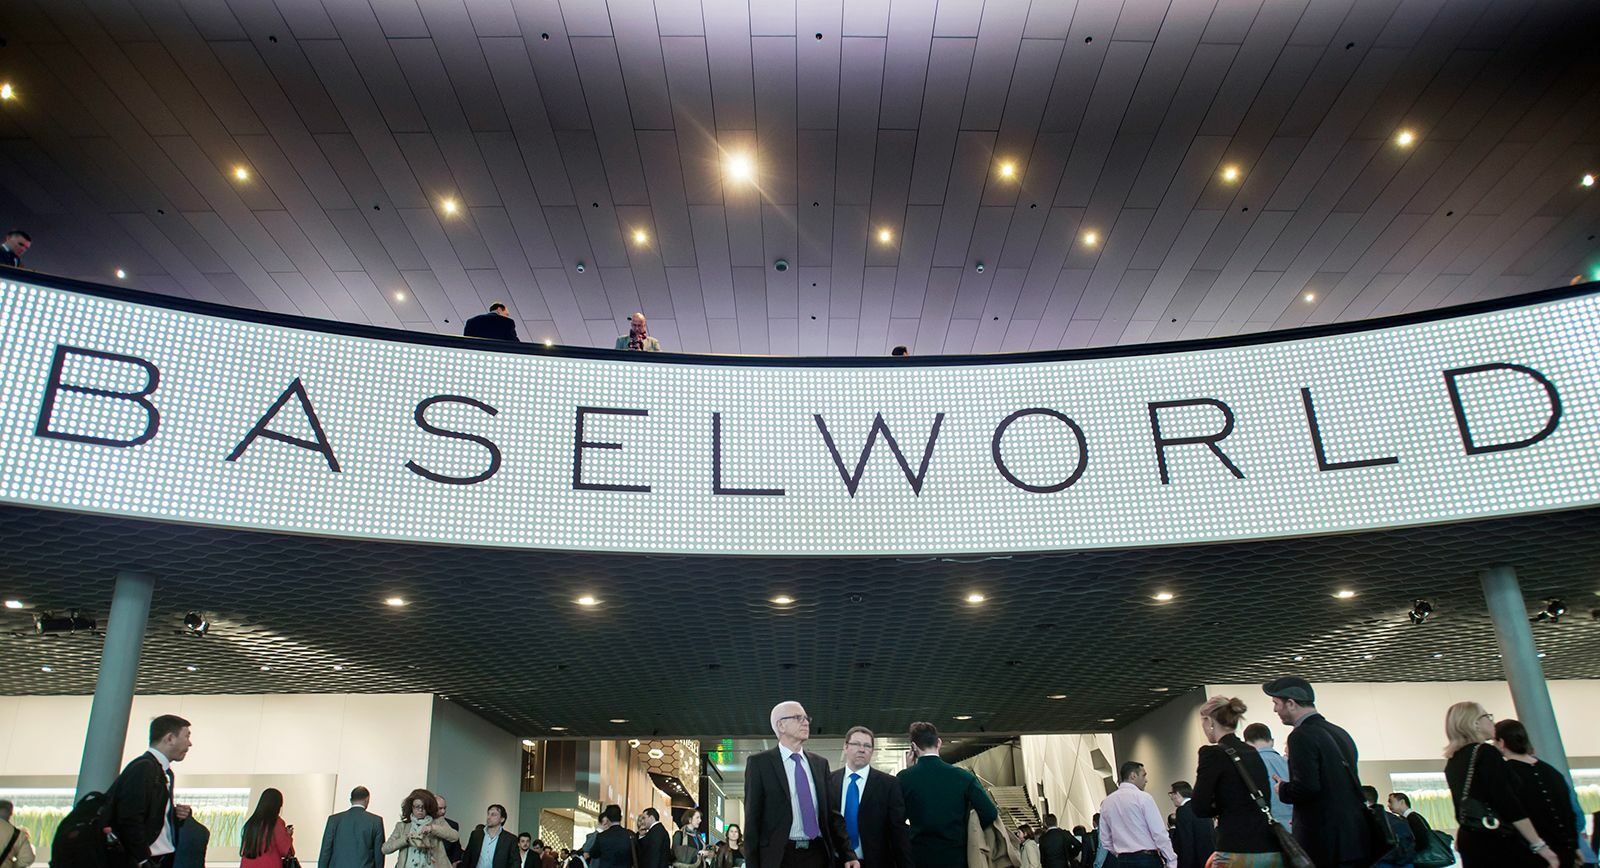 Baselworld 2015 Through Katerina Perez' Eyes